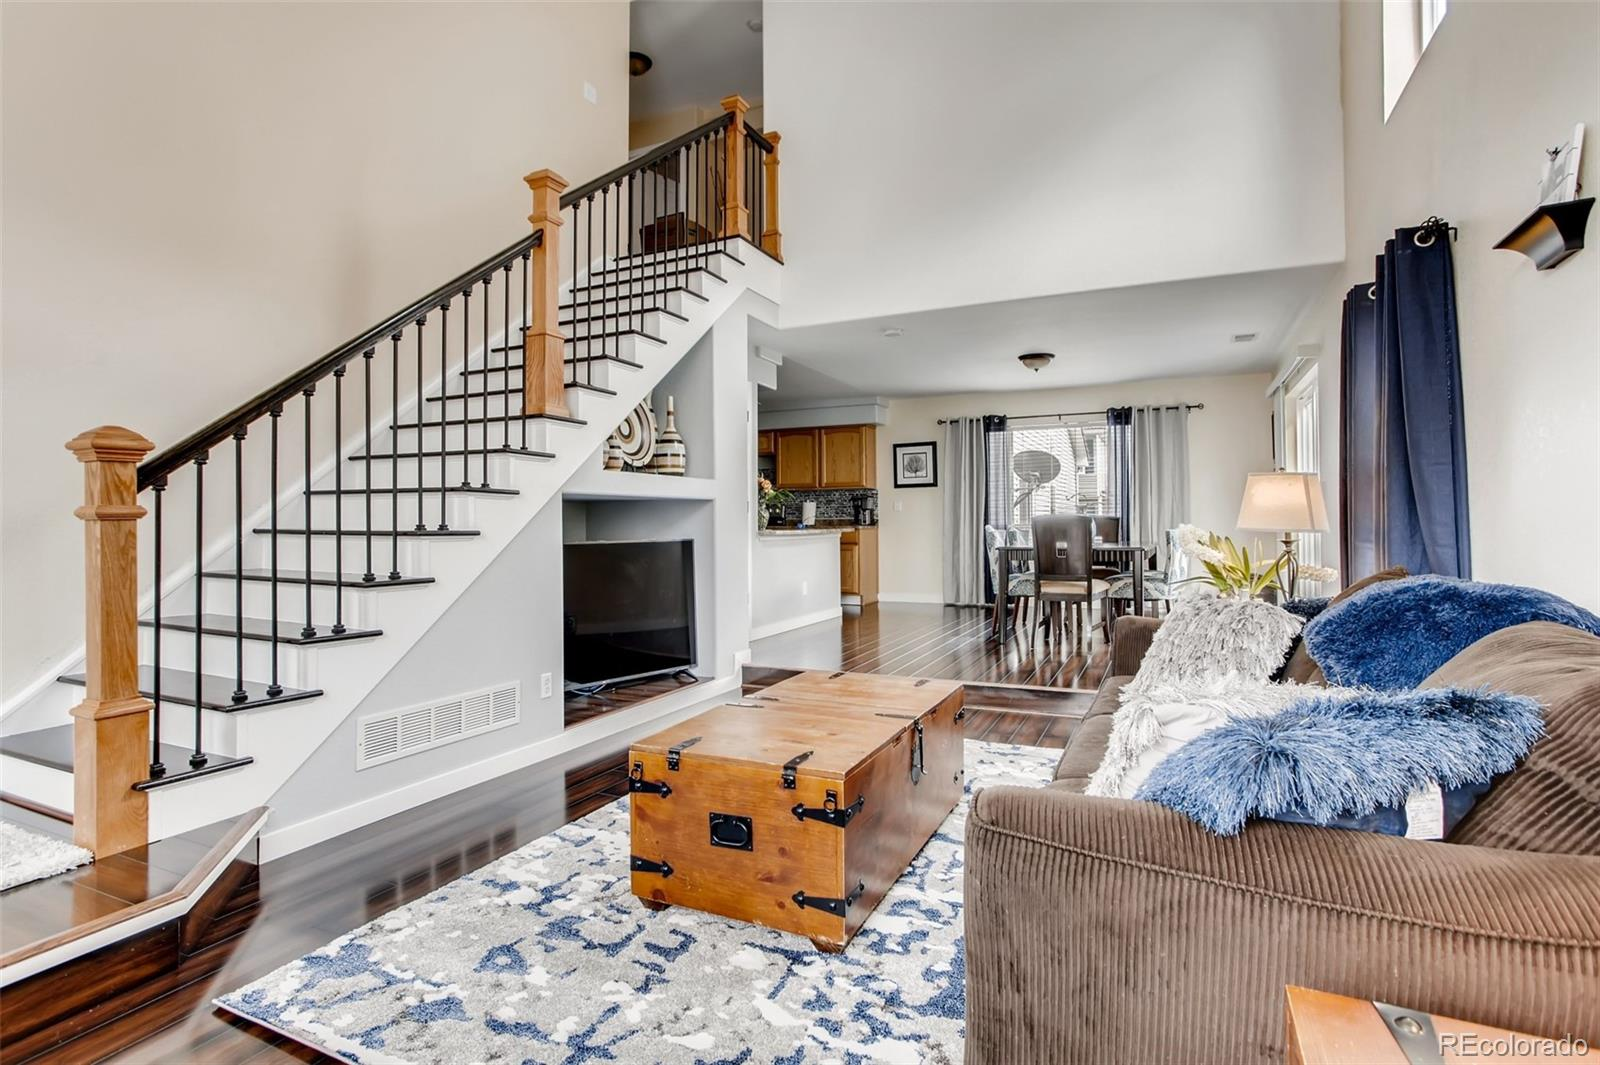 MLS# 3131128 - 3 - 20000 Mitchell Place #64, Denver, CO 80249